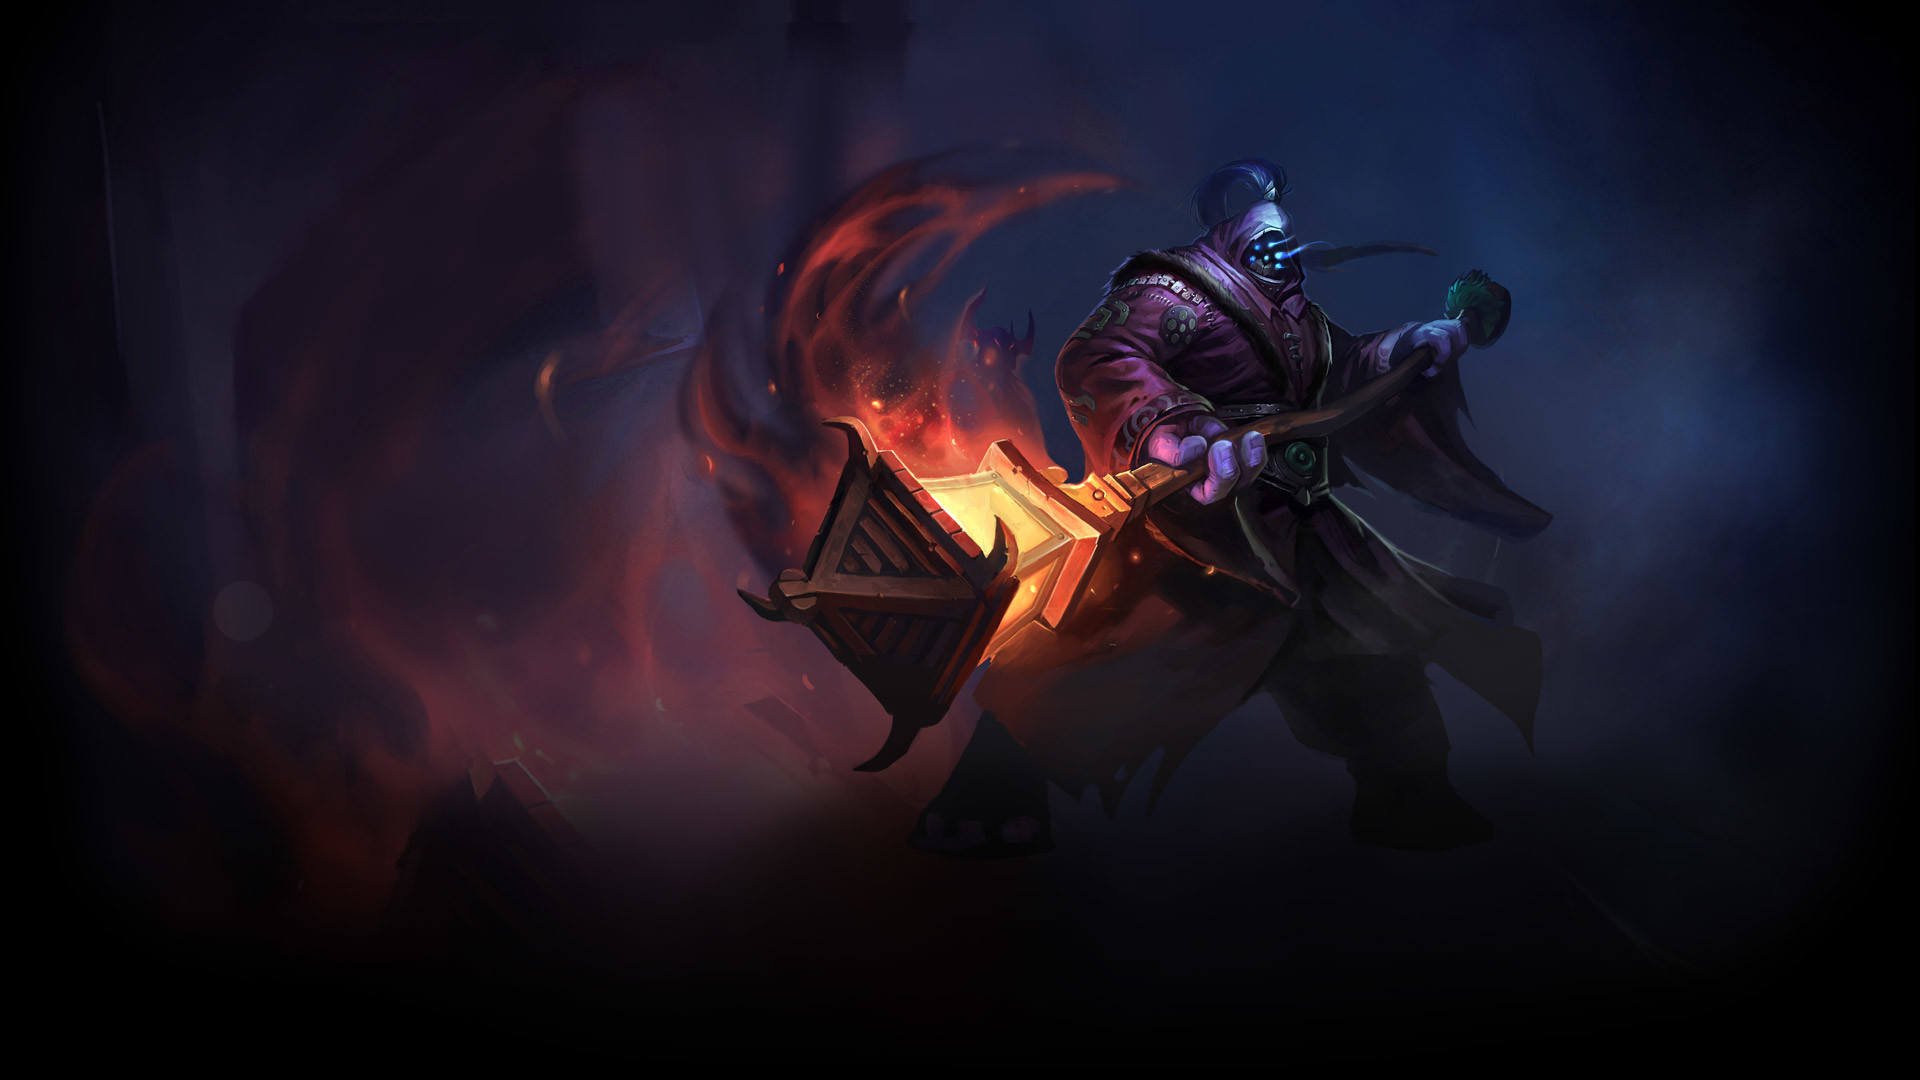 1920x1080 Of Legends Jax Splash Art PC Android iPhone and iPad Wallpapers